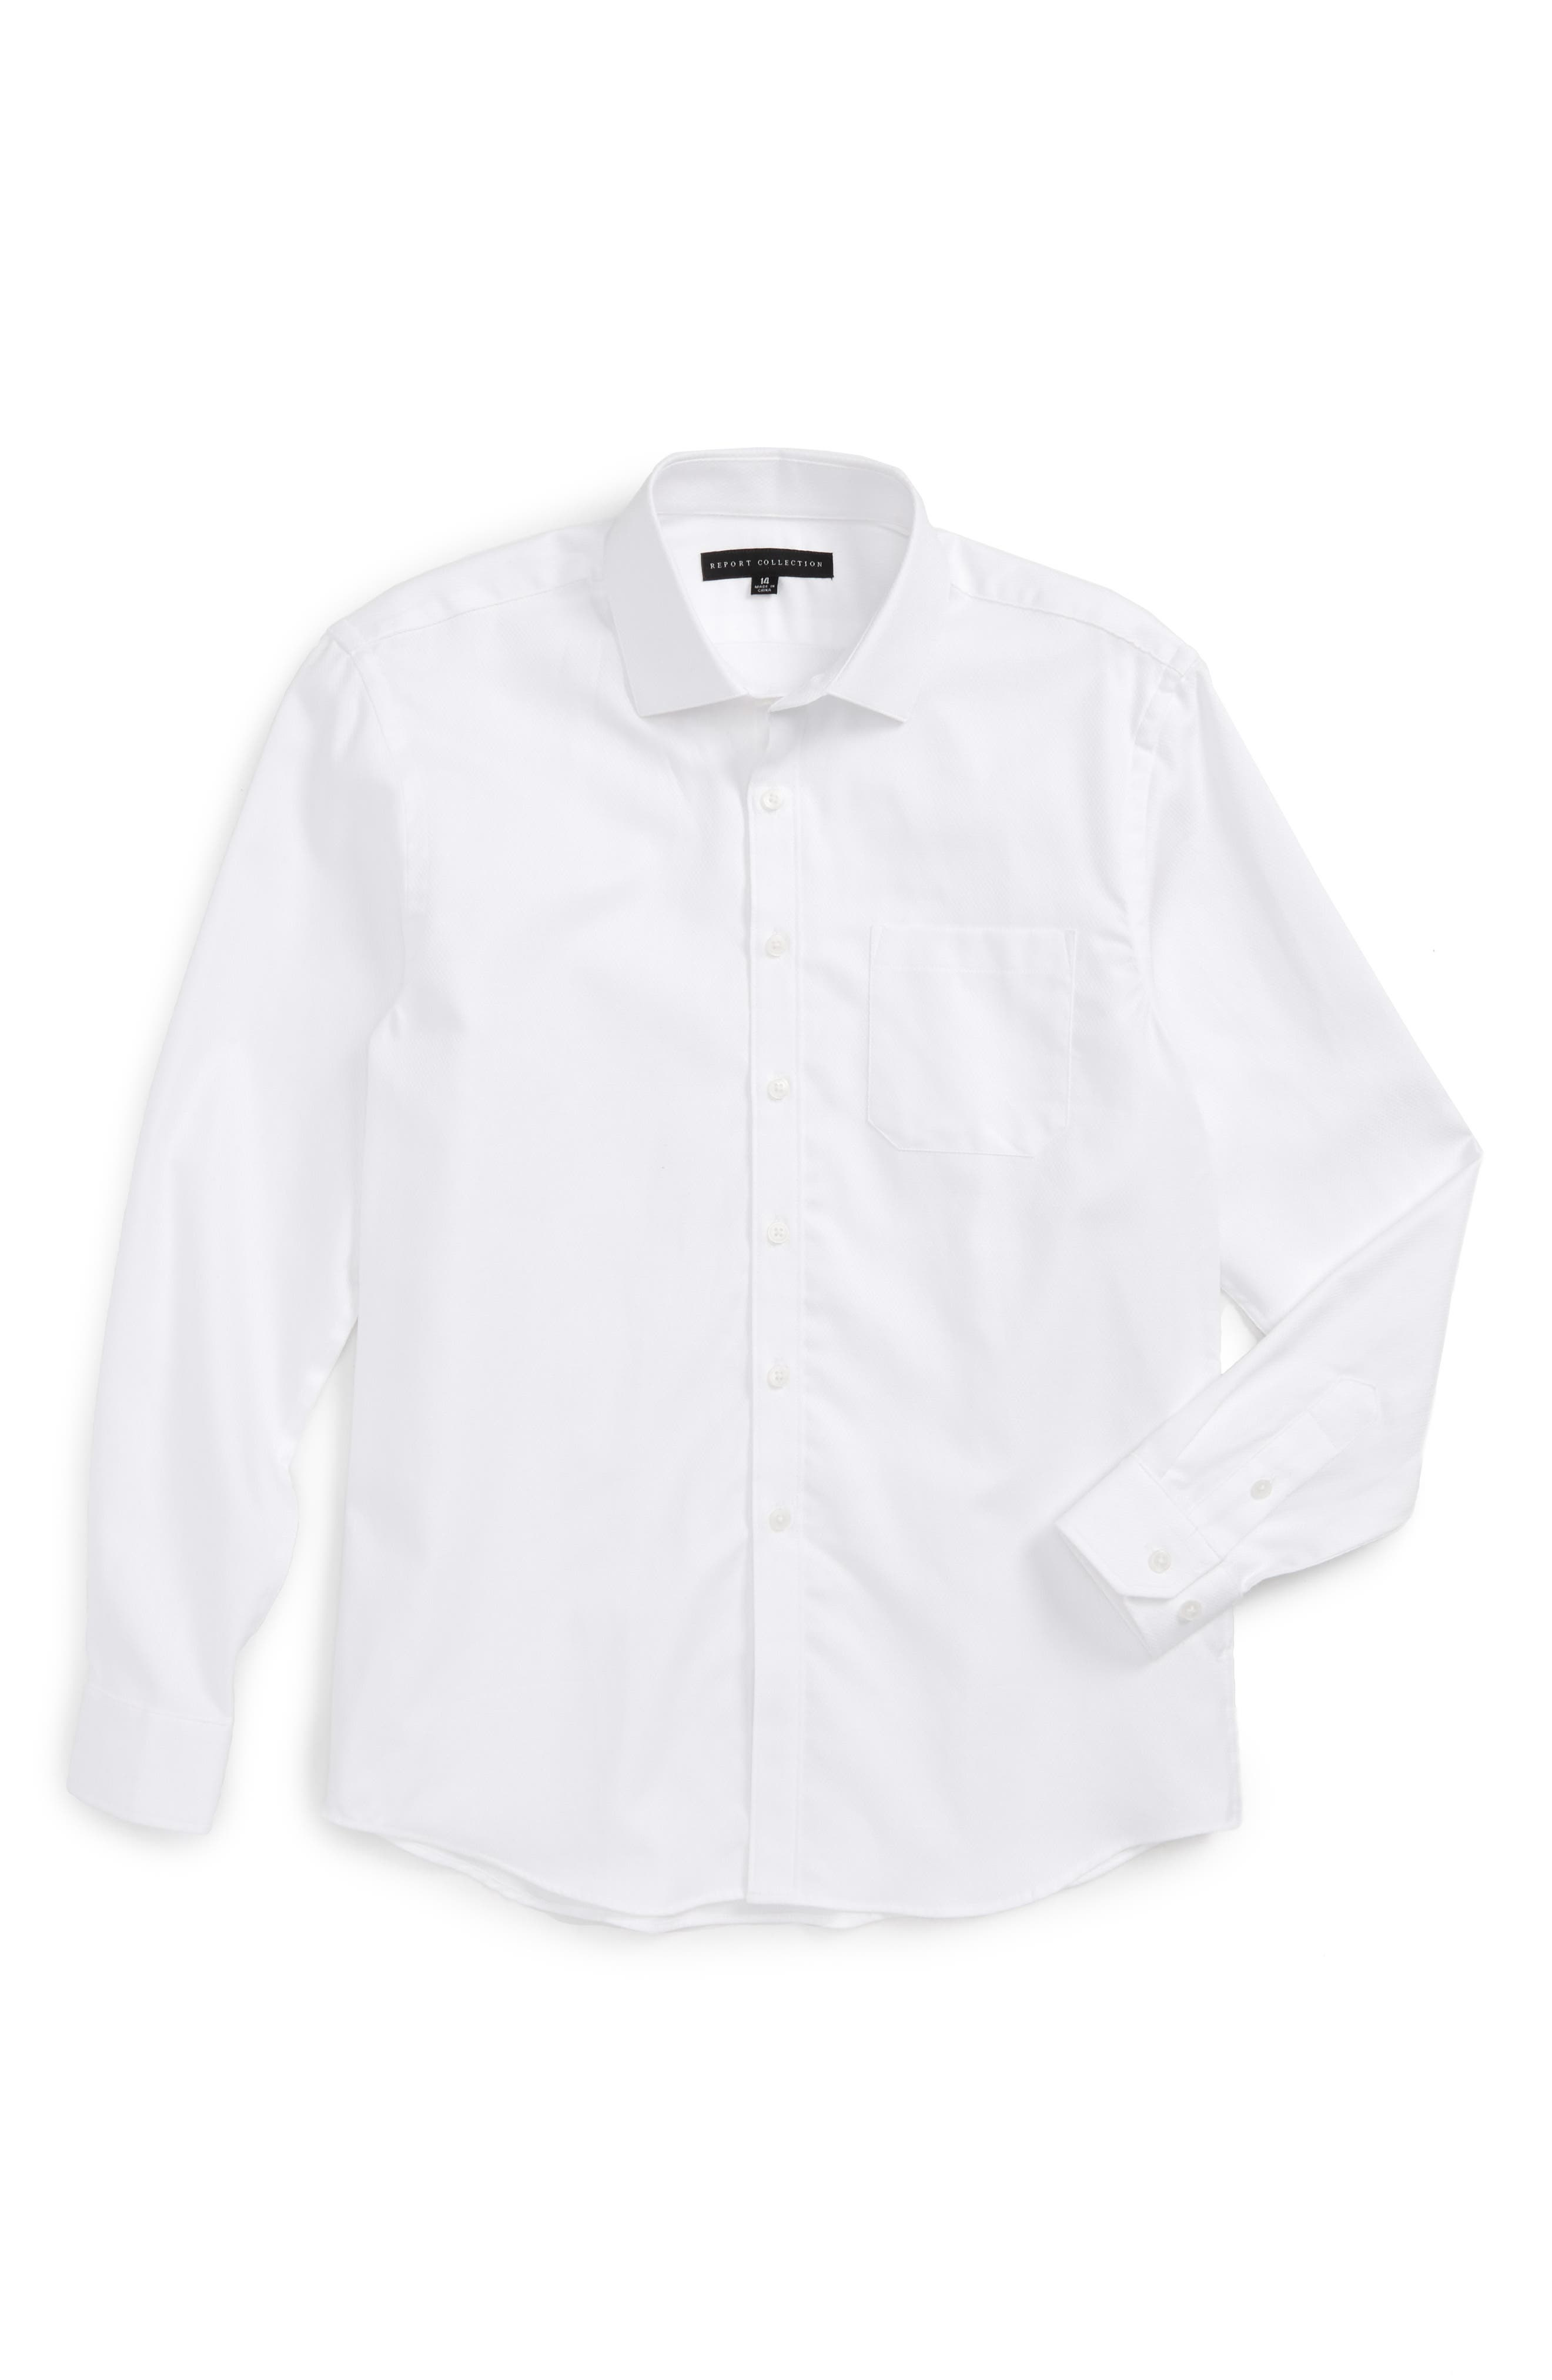 Alternate Image 1 Selected - Report Collection Textured Dress Shirt (Big Boys)